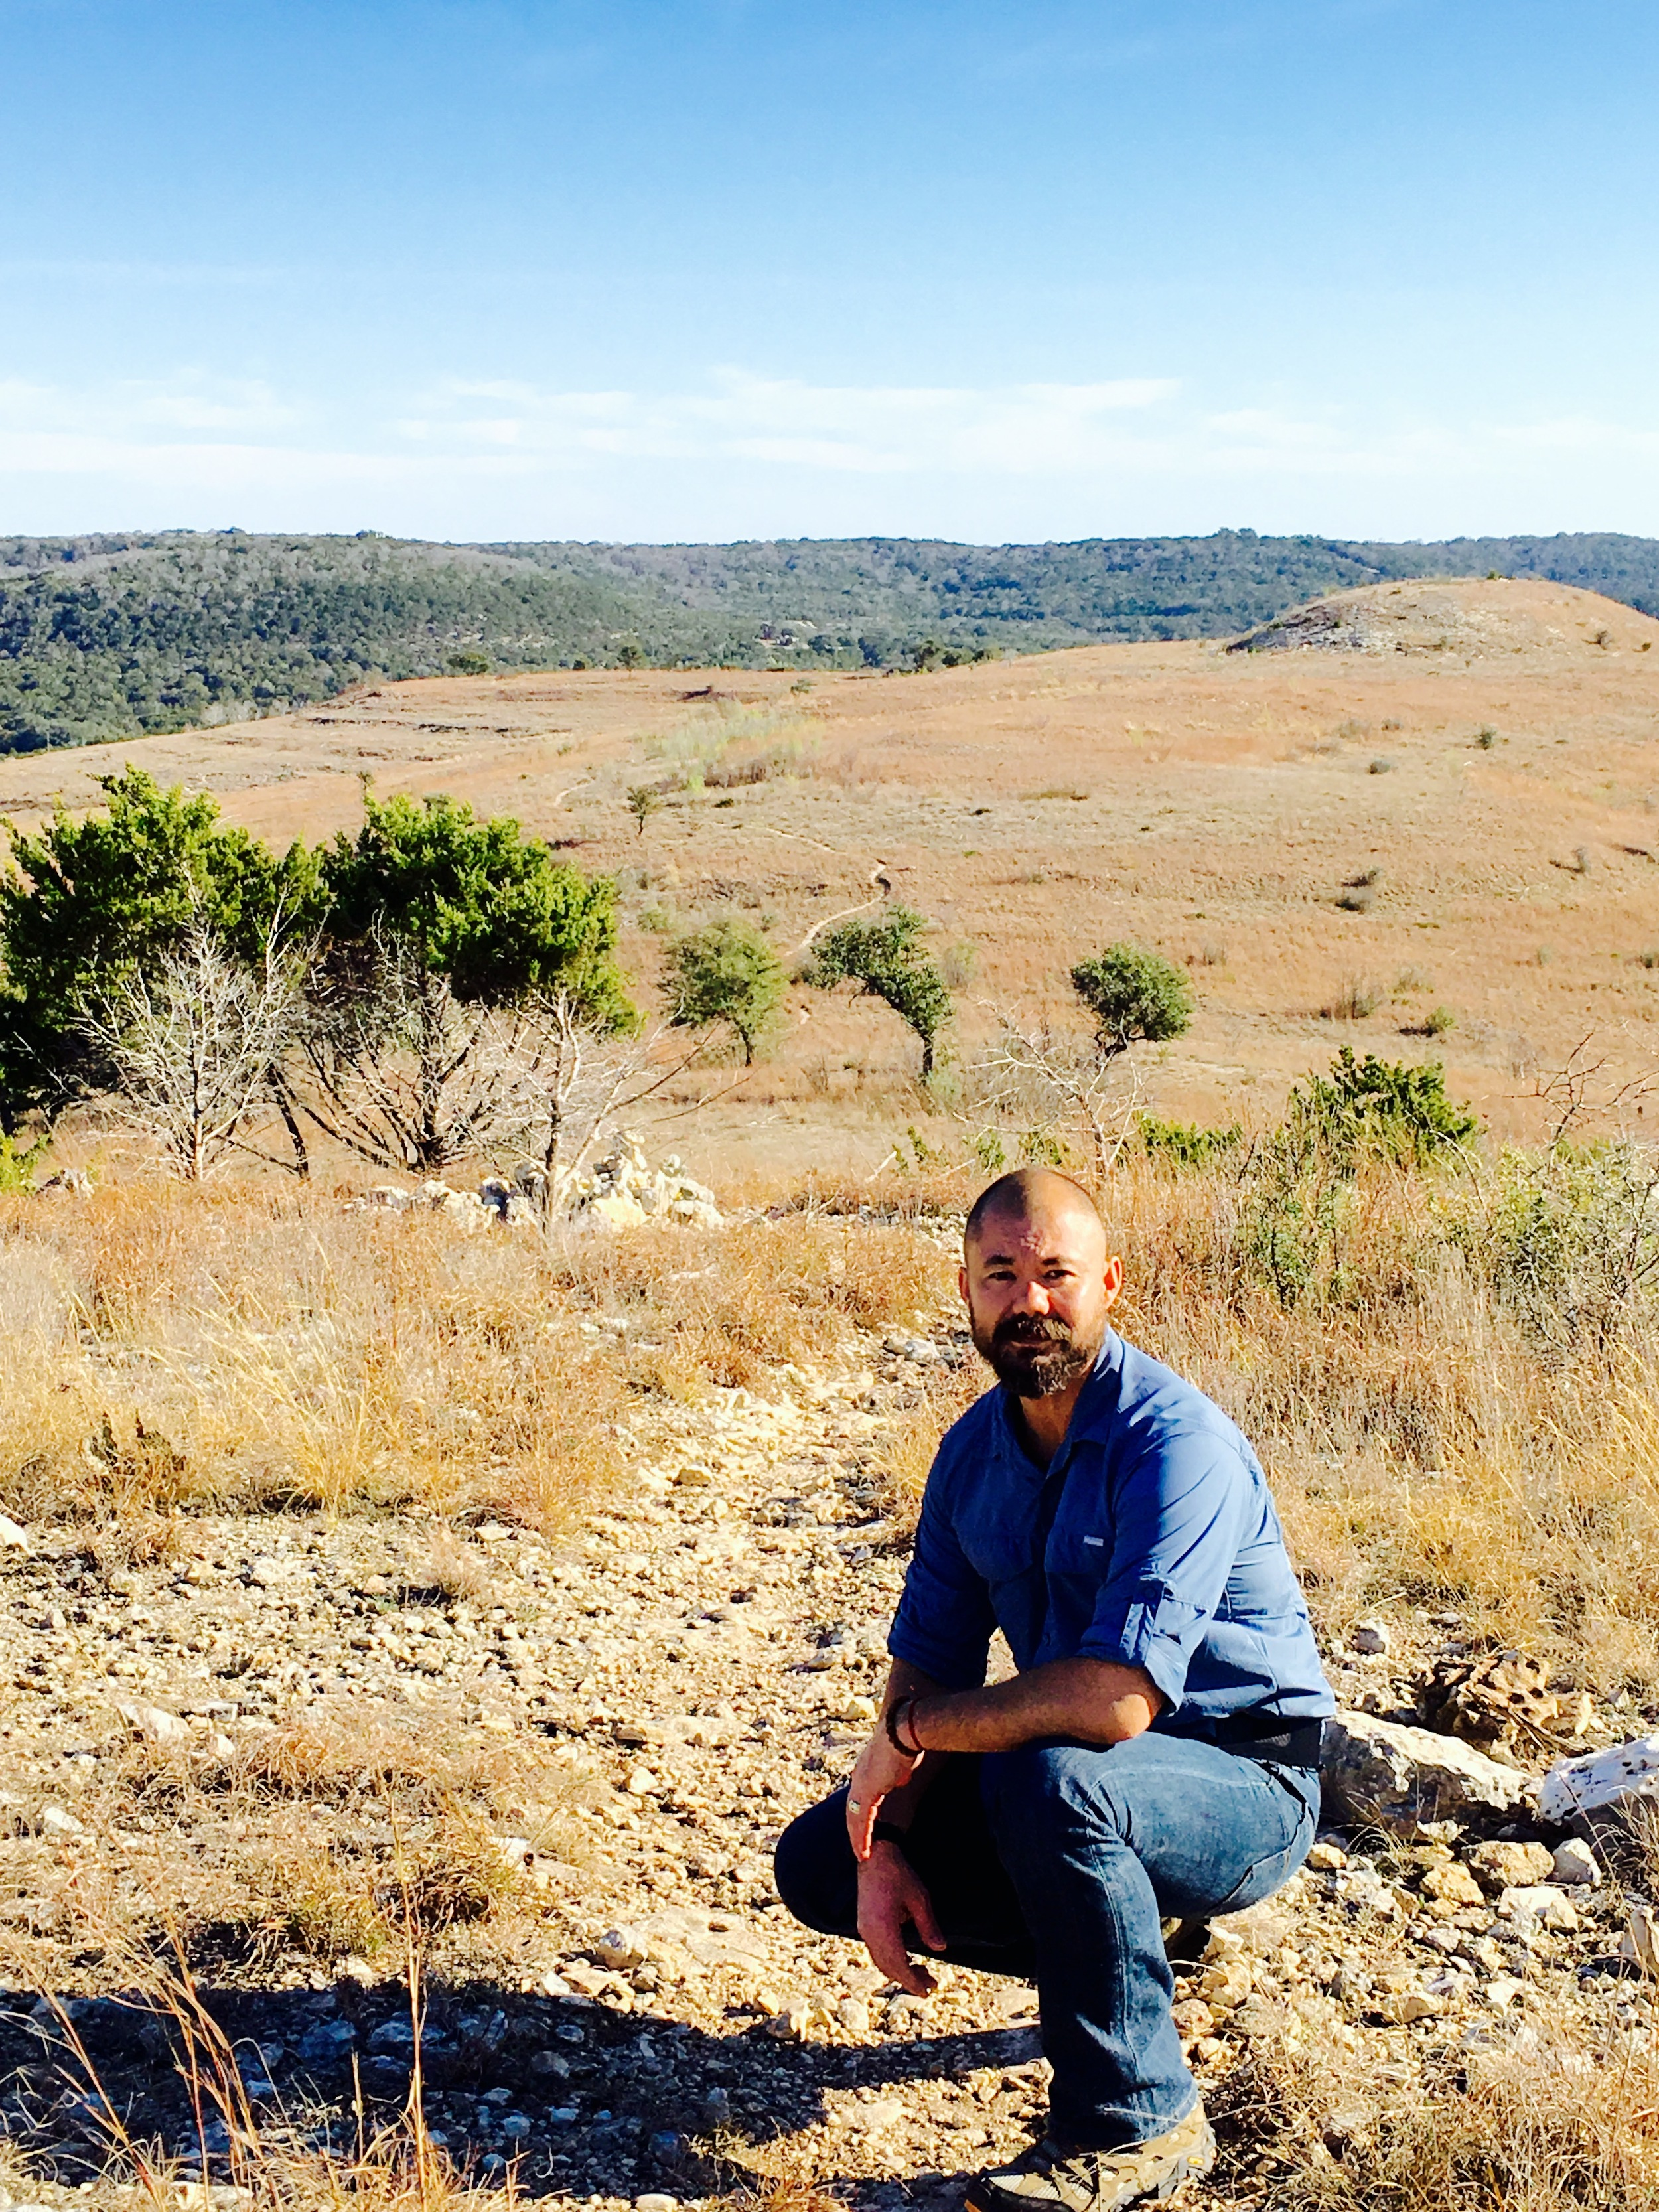 John Lykcurgus Wade and his wife Roxy, both Certified Cognitively-Based Compassion Training (CBCT) Teachers in the beautiful Hill Country of Central Texas